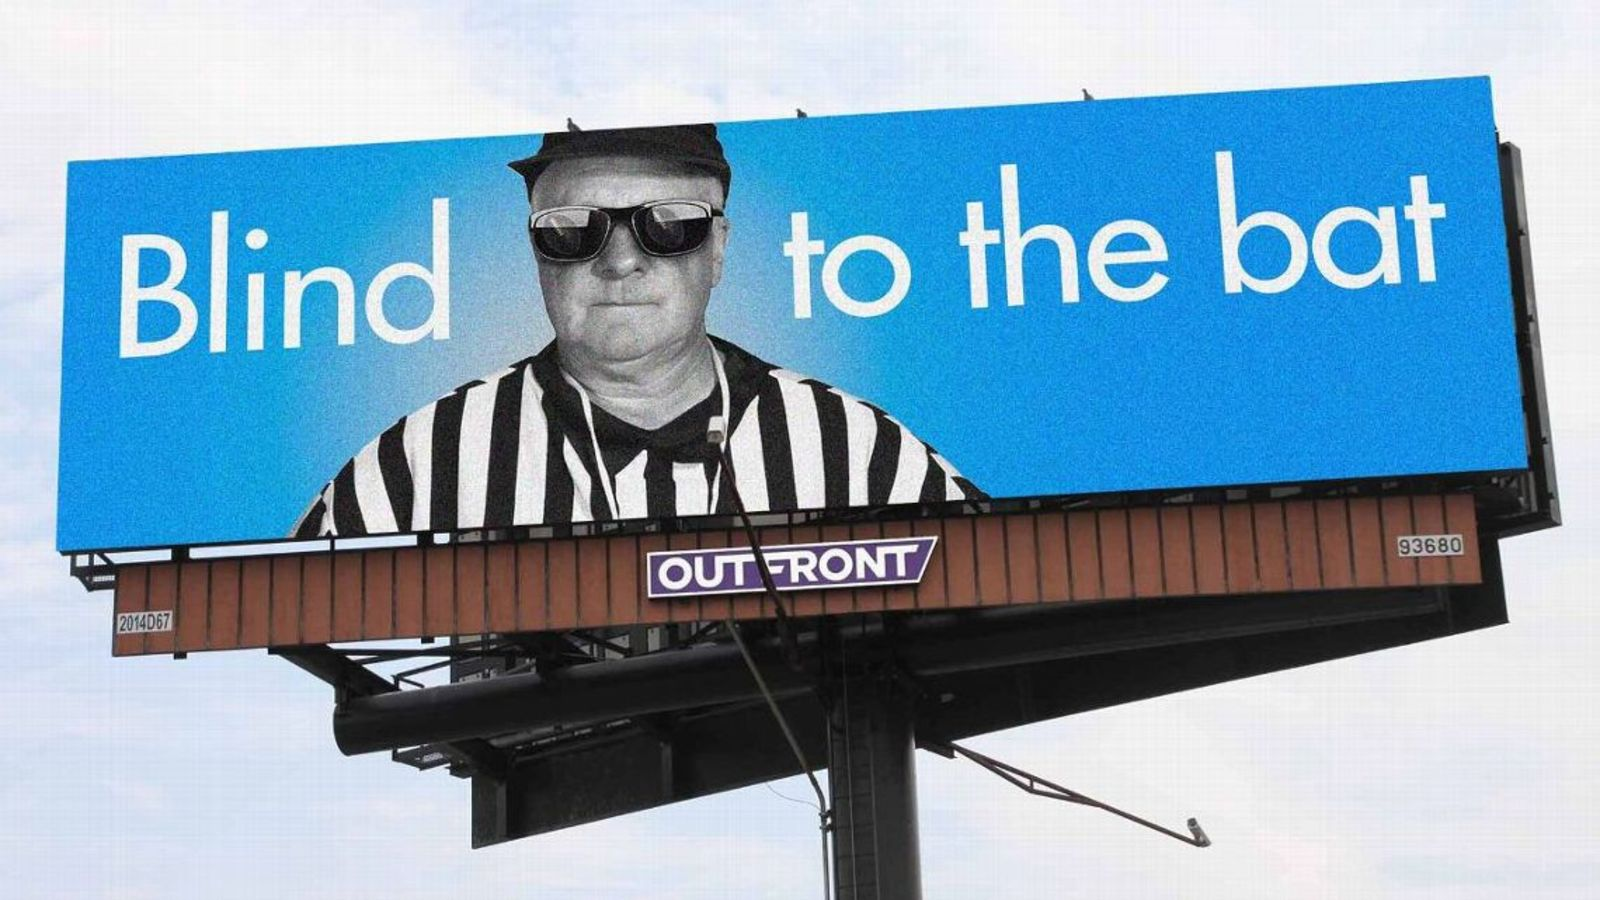 Lions fans protest MNF call with 'Blind to the bat' billboards